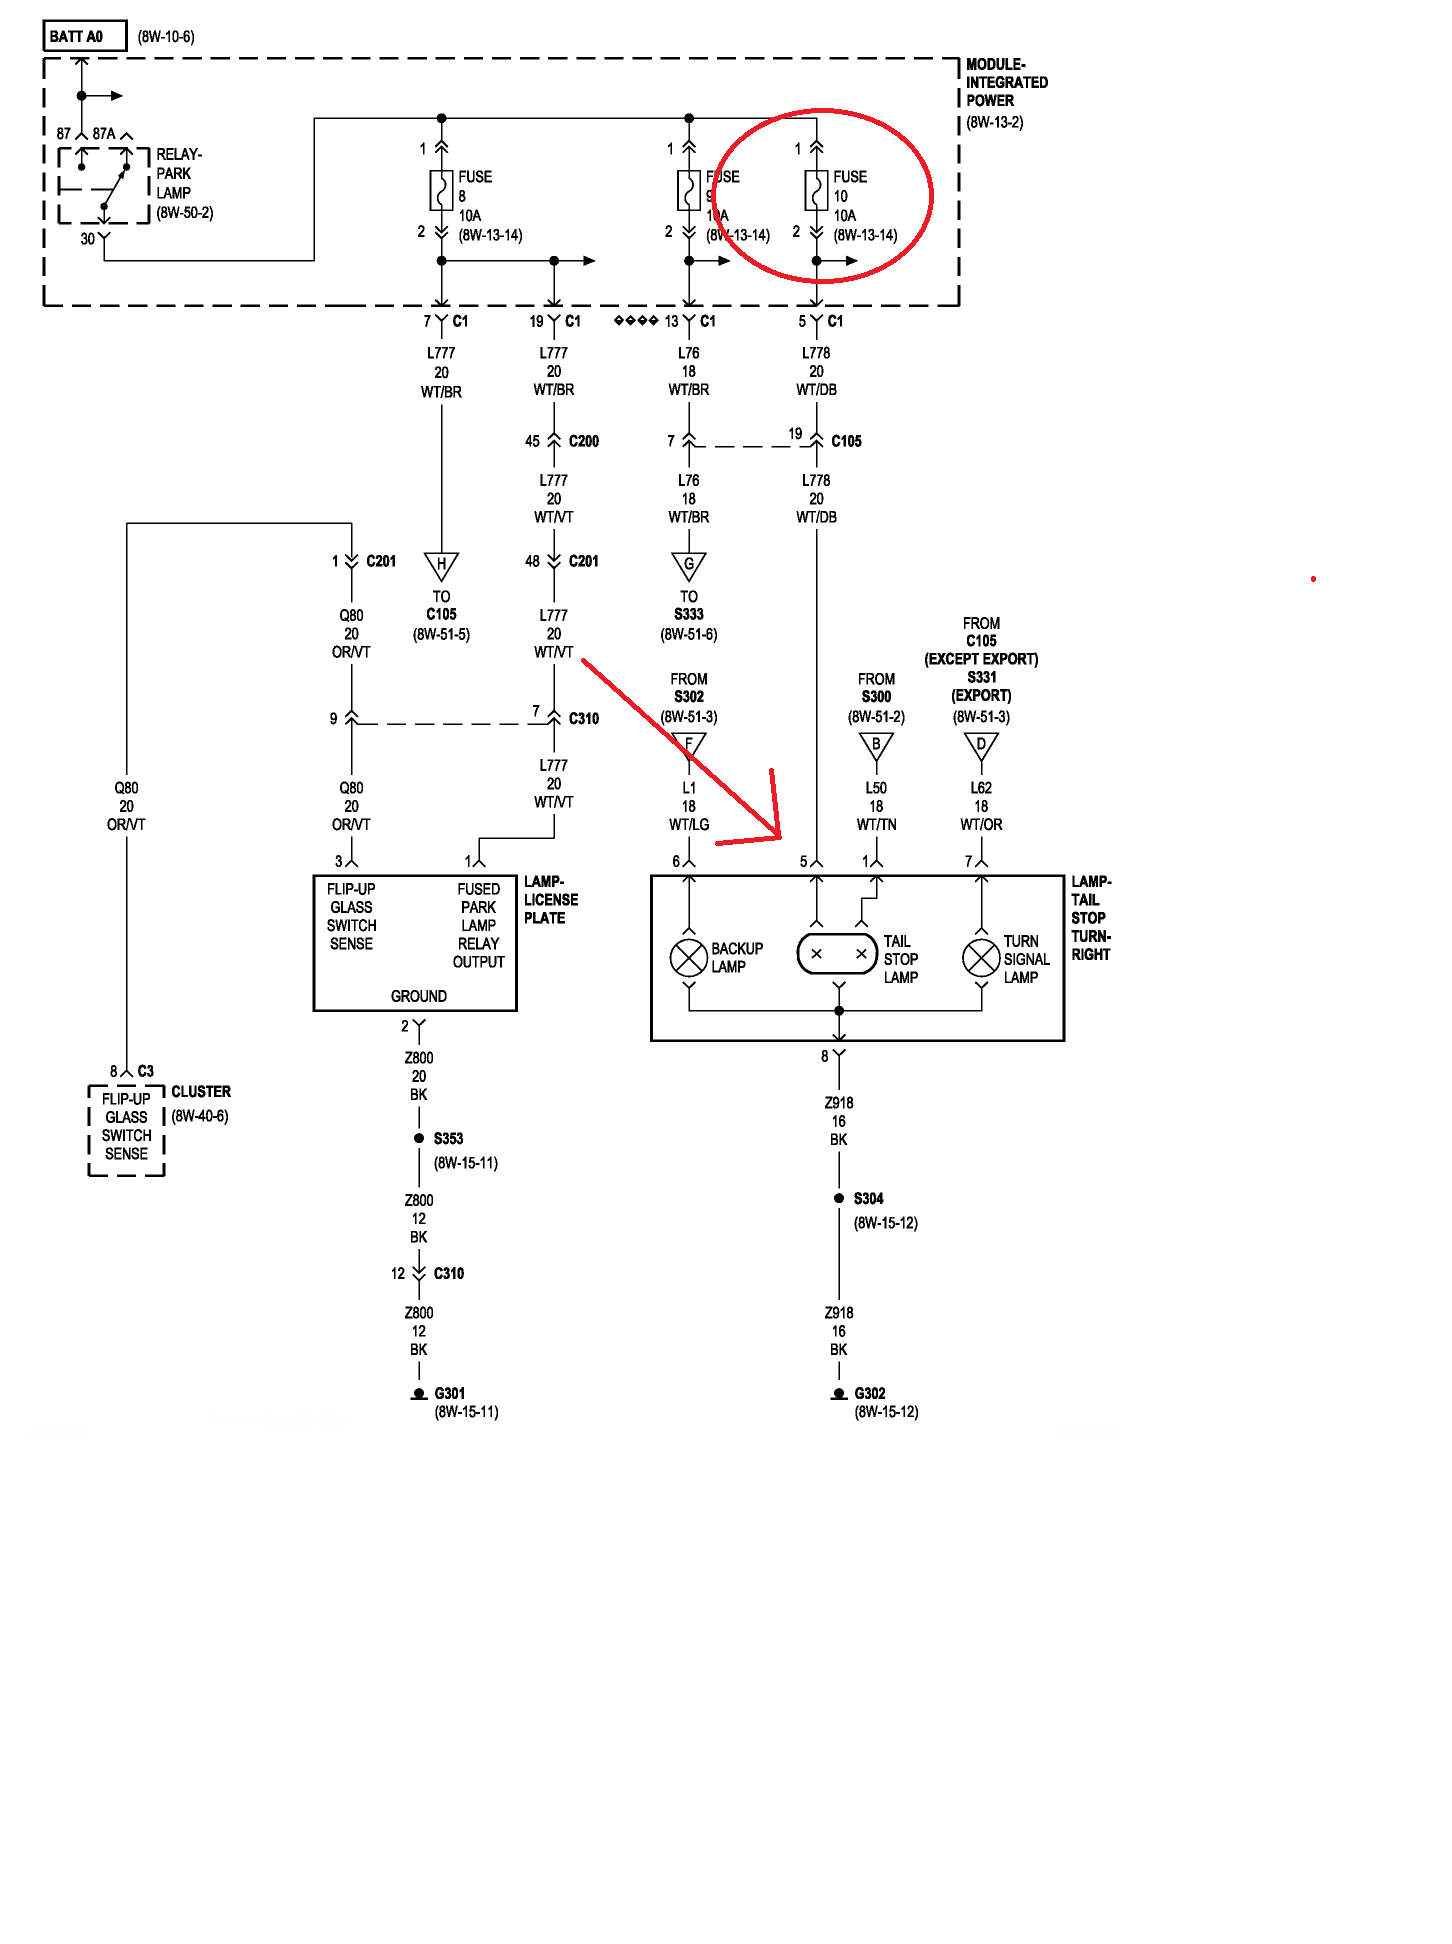 Awesome Wiring Diagram Jeep Grand Cherokee Diagrams Digramssample Diagramimages Wirin Jeep Grand Cherokee 2005 Jeep Grand Cherokee Jeep Cherokee Headlights